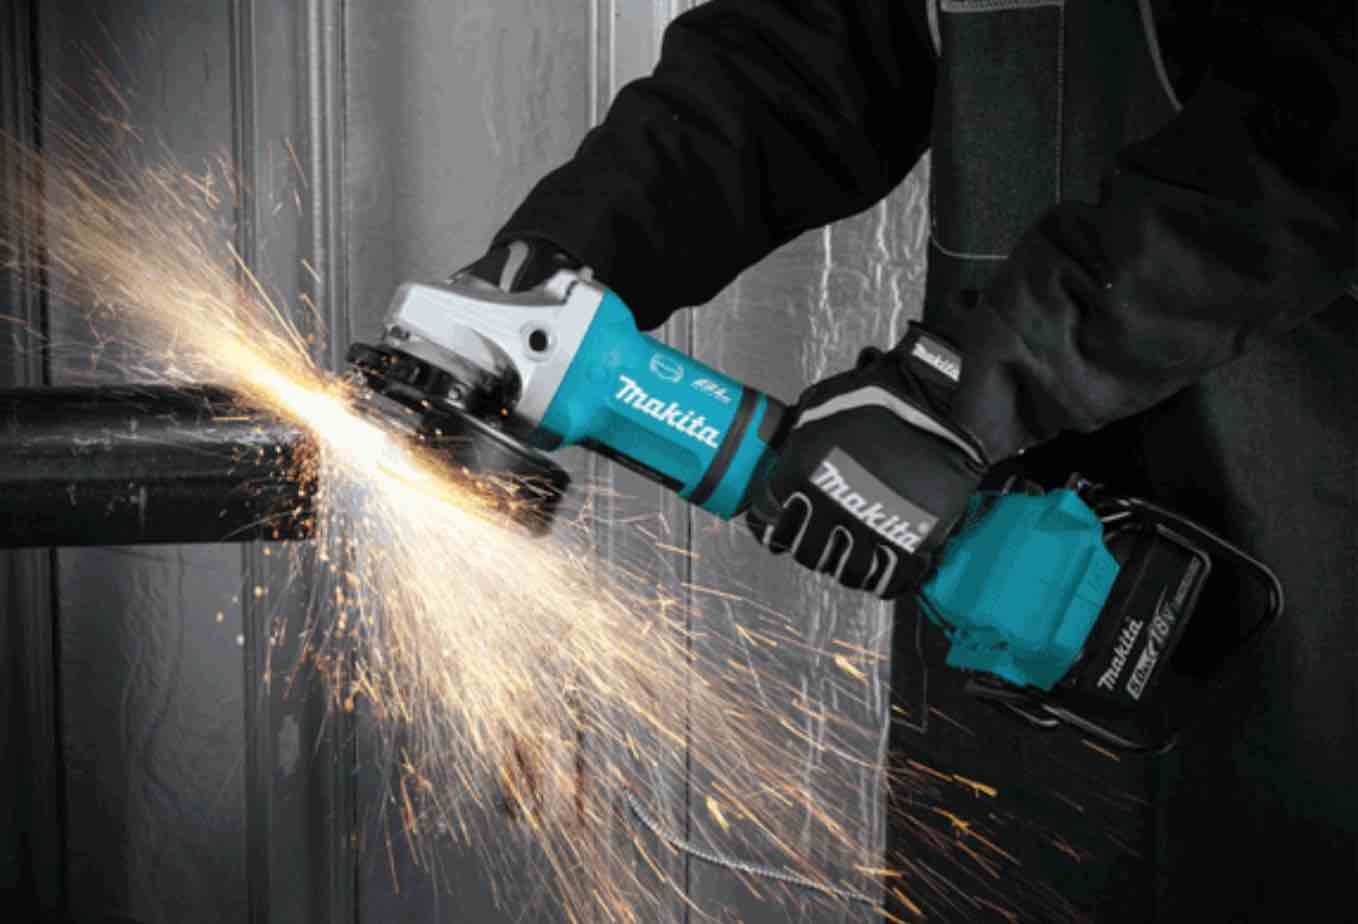 makita-metal-working.jpg